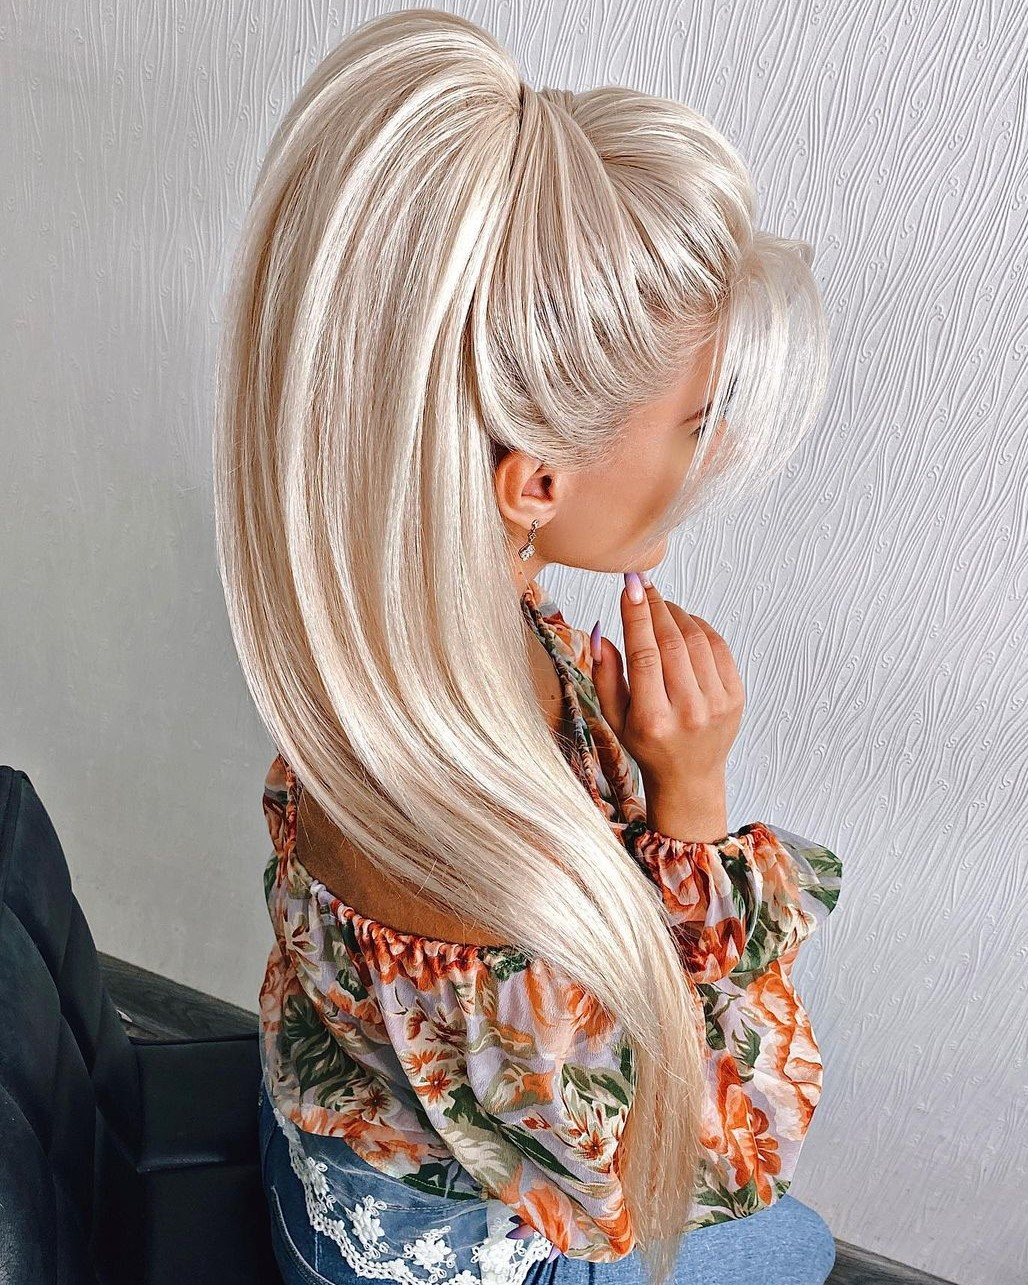 High Ponytail Updo with Volume